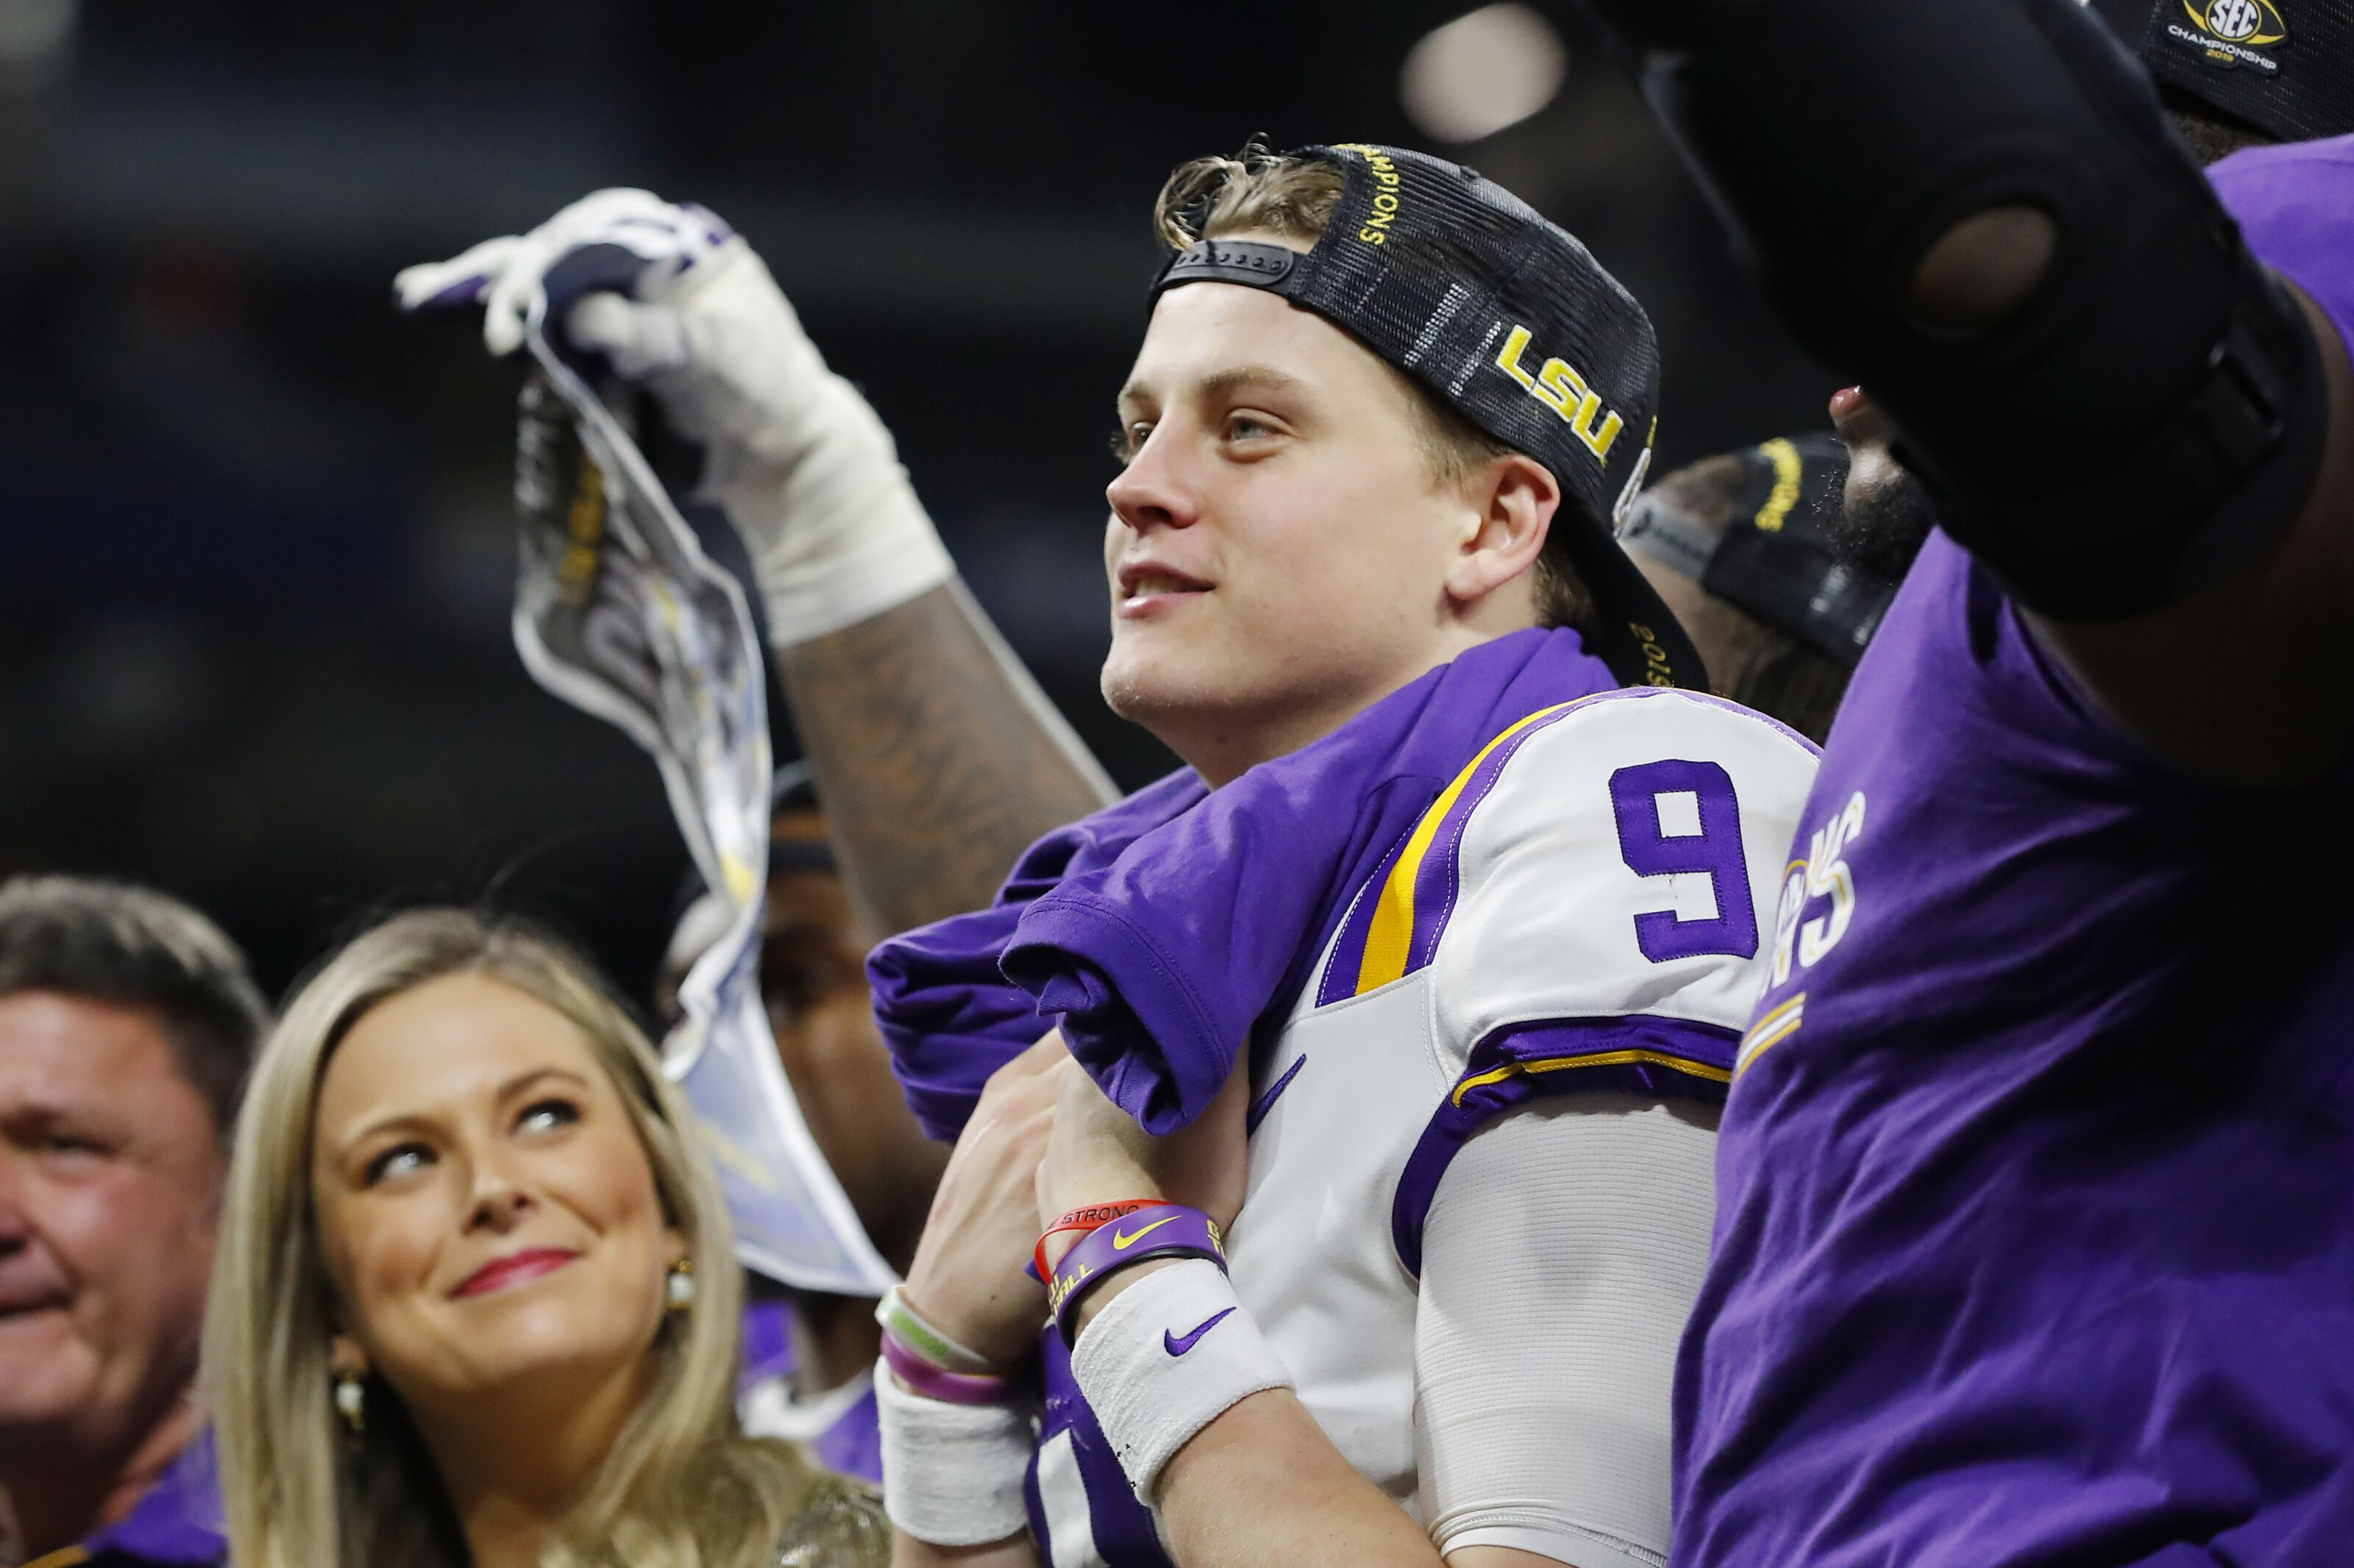 College Football Playoff predictions: LSU steals No. 1 spot from Ohio State, Oklahoma sneaks in